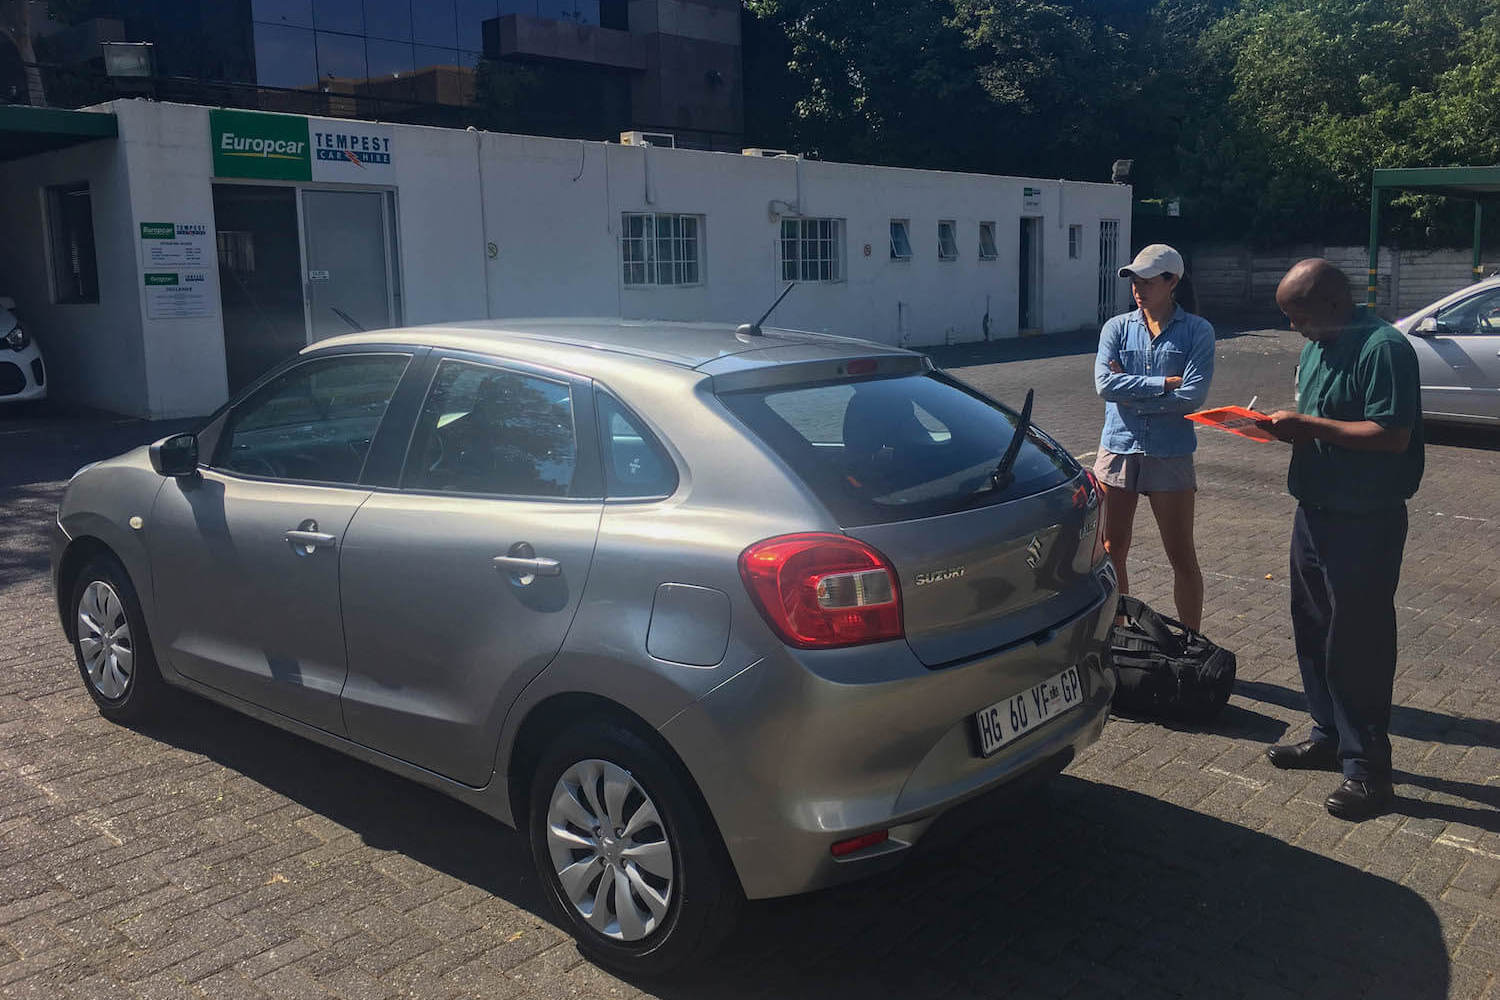 Rental car inspection in South Africa